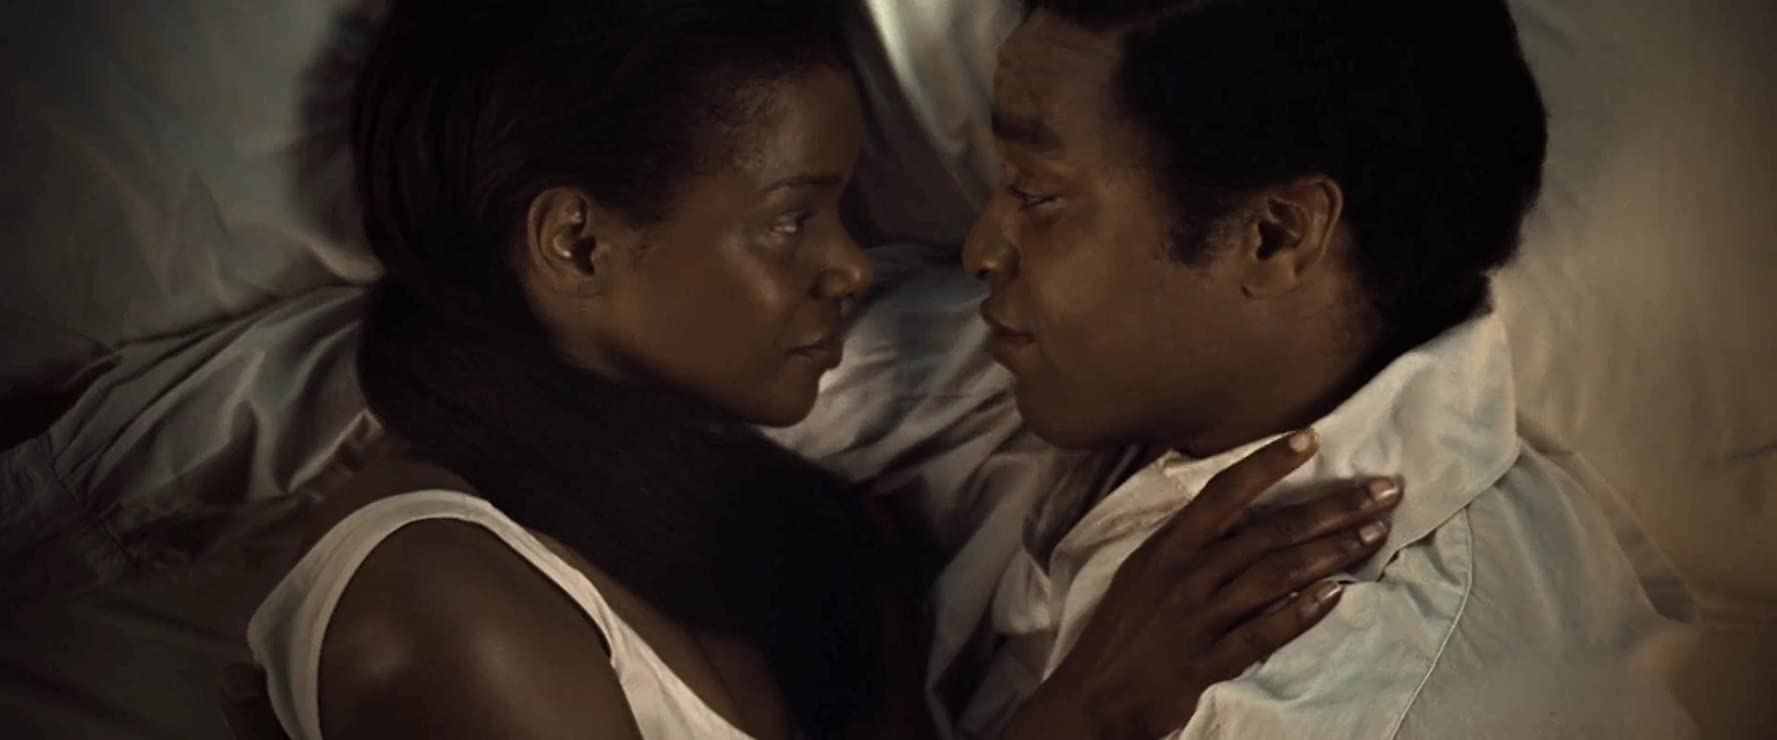 Chiwetel Ejiofor and Kelsey Scott in 12 Years a Slave (2013)